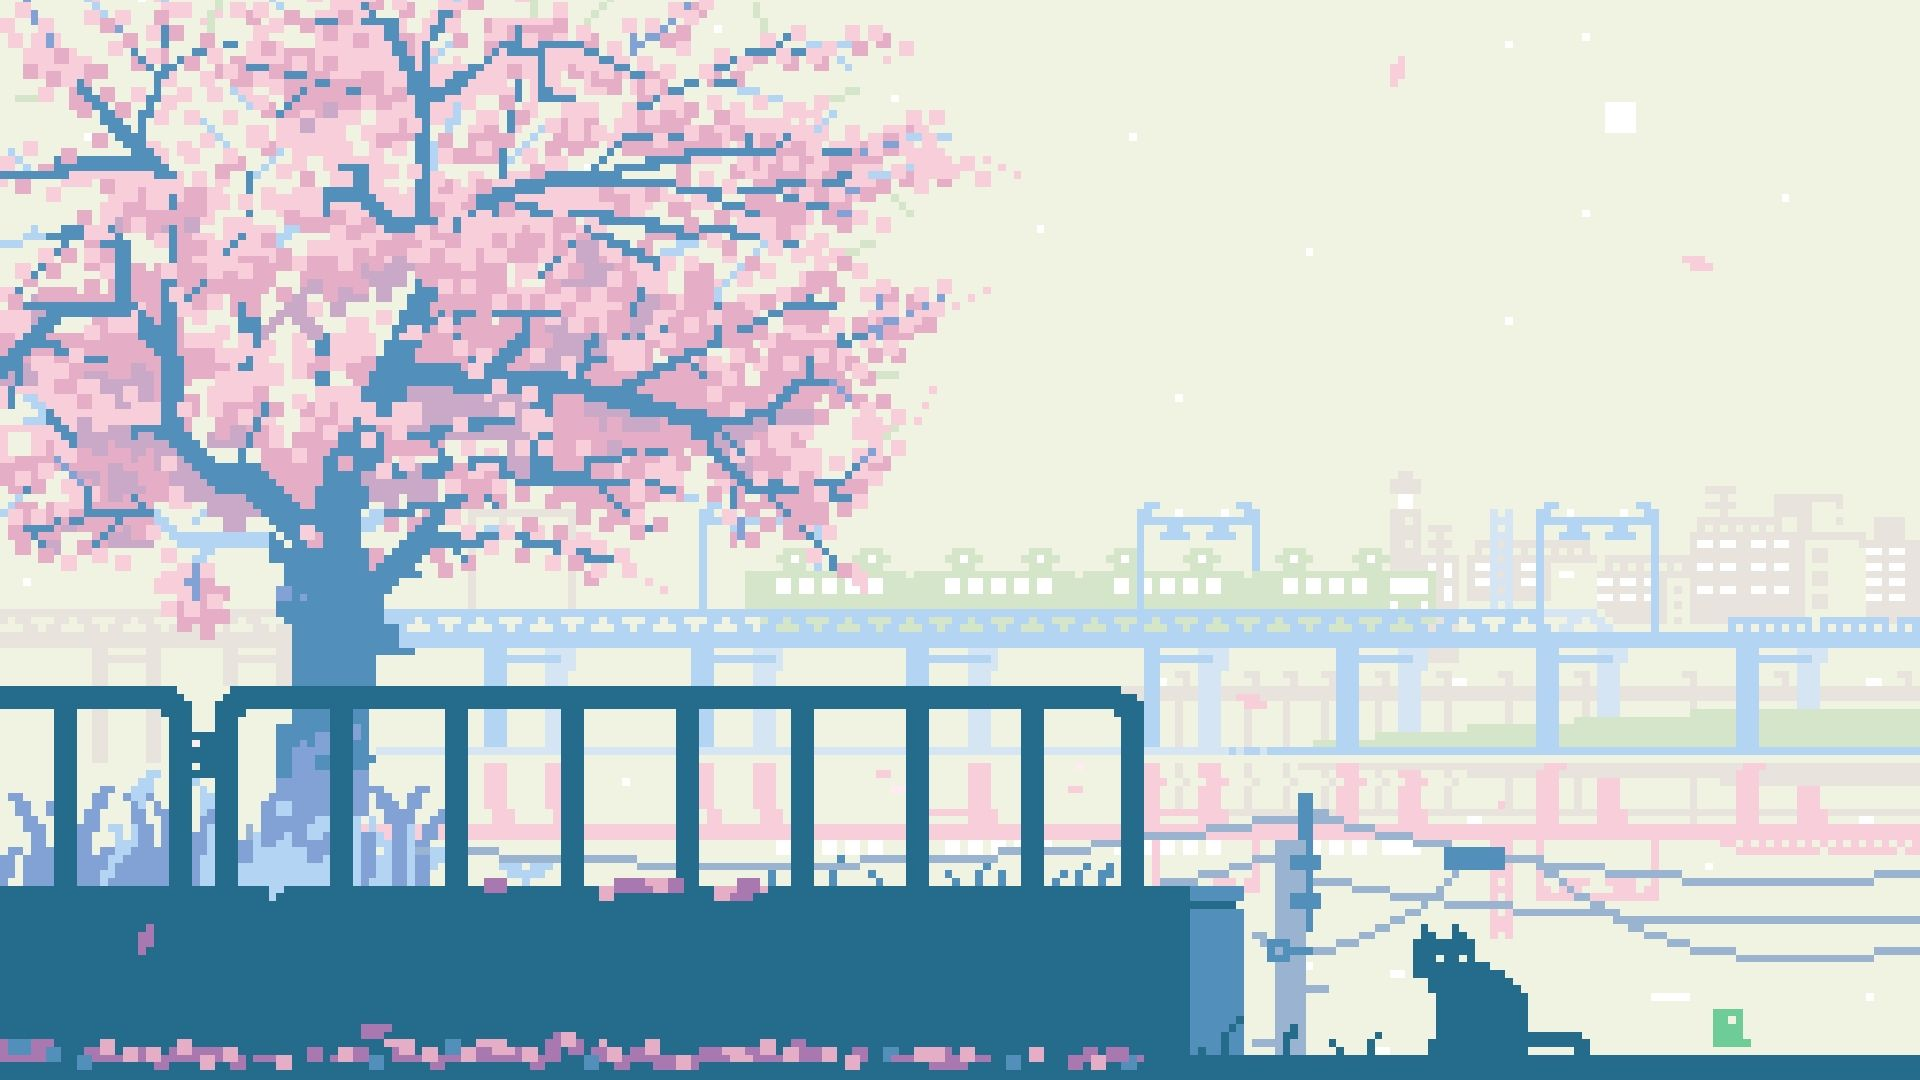 Anime Wallpaper Aesthetic Posted By Ryan Mercado